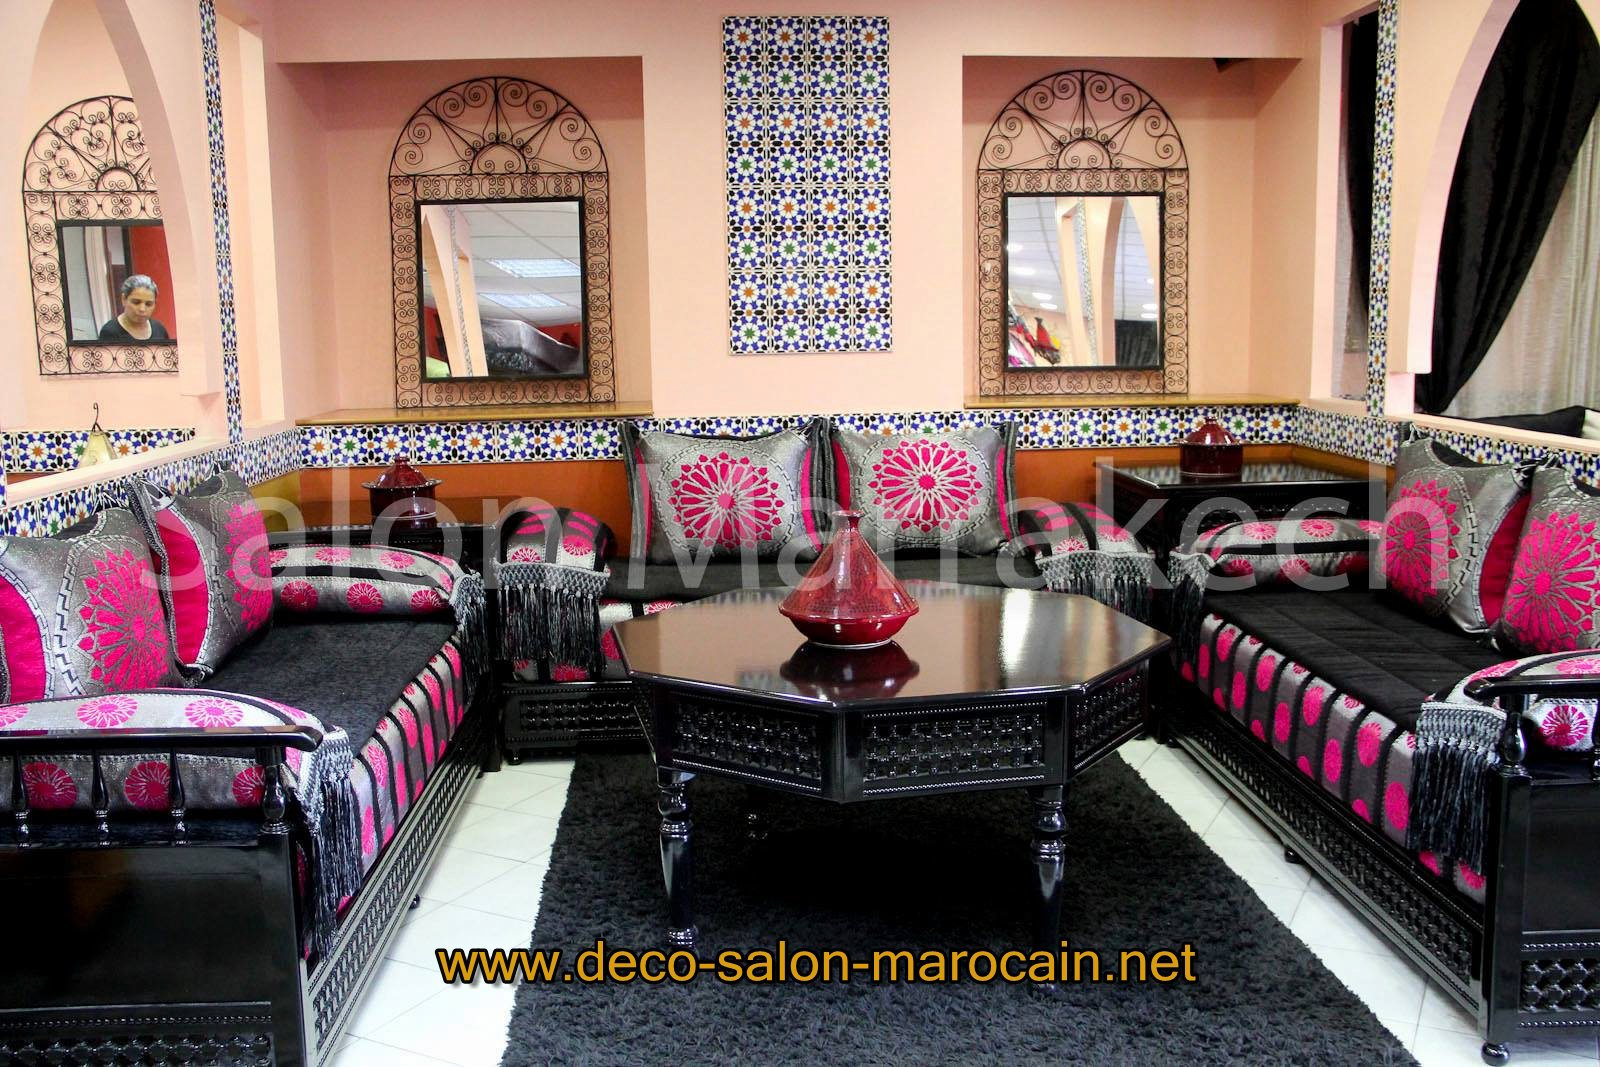 salon marocain bois noir design moderne d co salon marocain. Black Bedroom Furniture Sets. Home Design Ideas